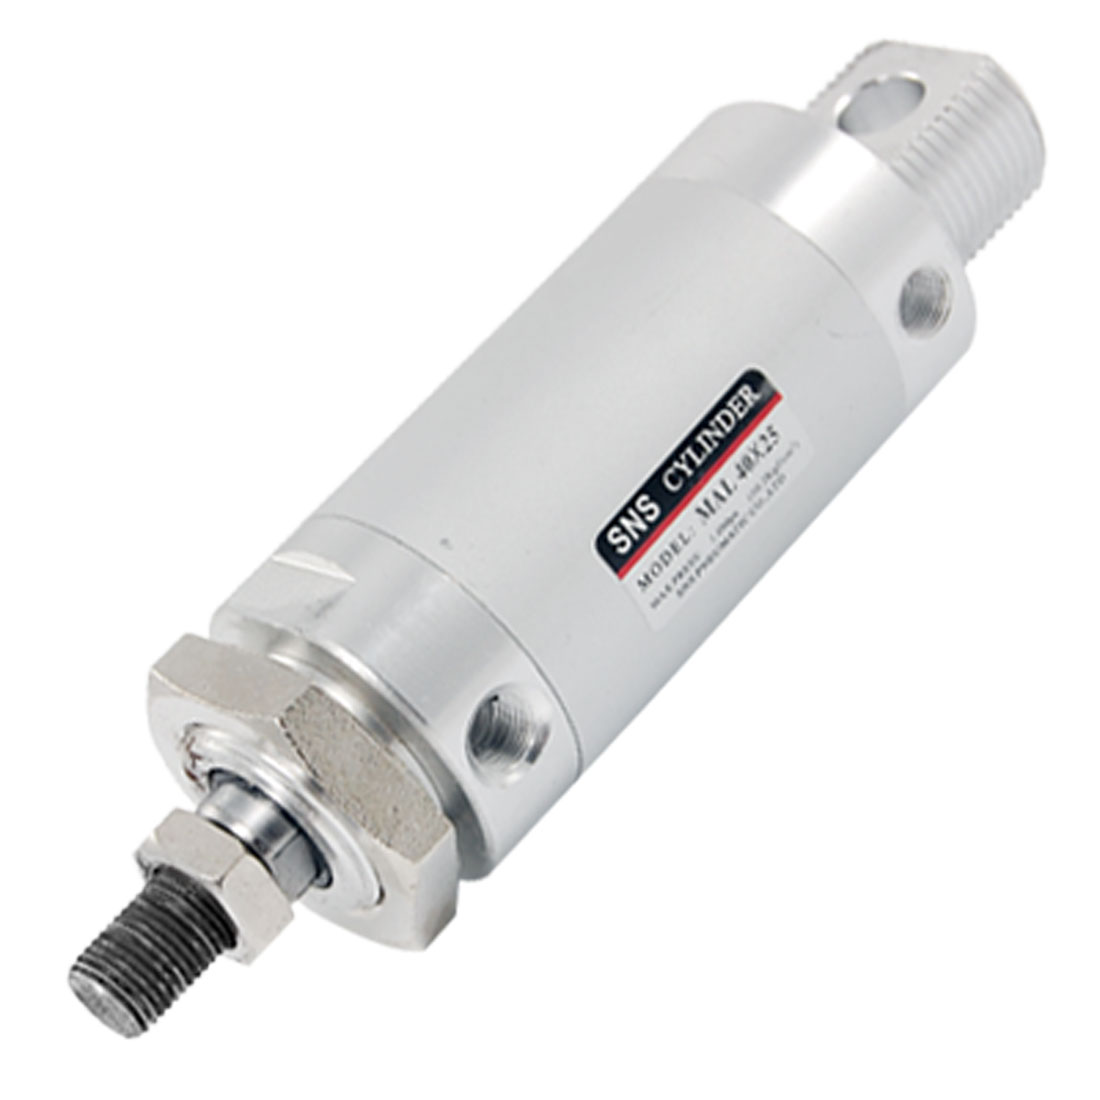 Dual Action 1.0Mpa MAL 40 x 25 Mini Pnaumatic Air Cylinder